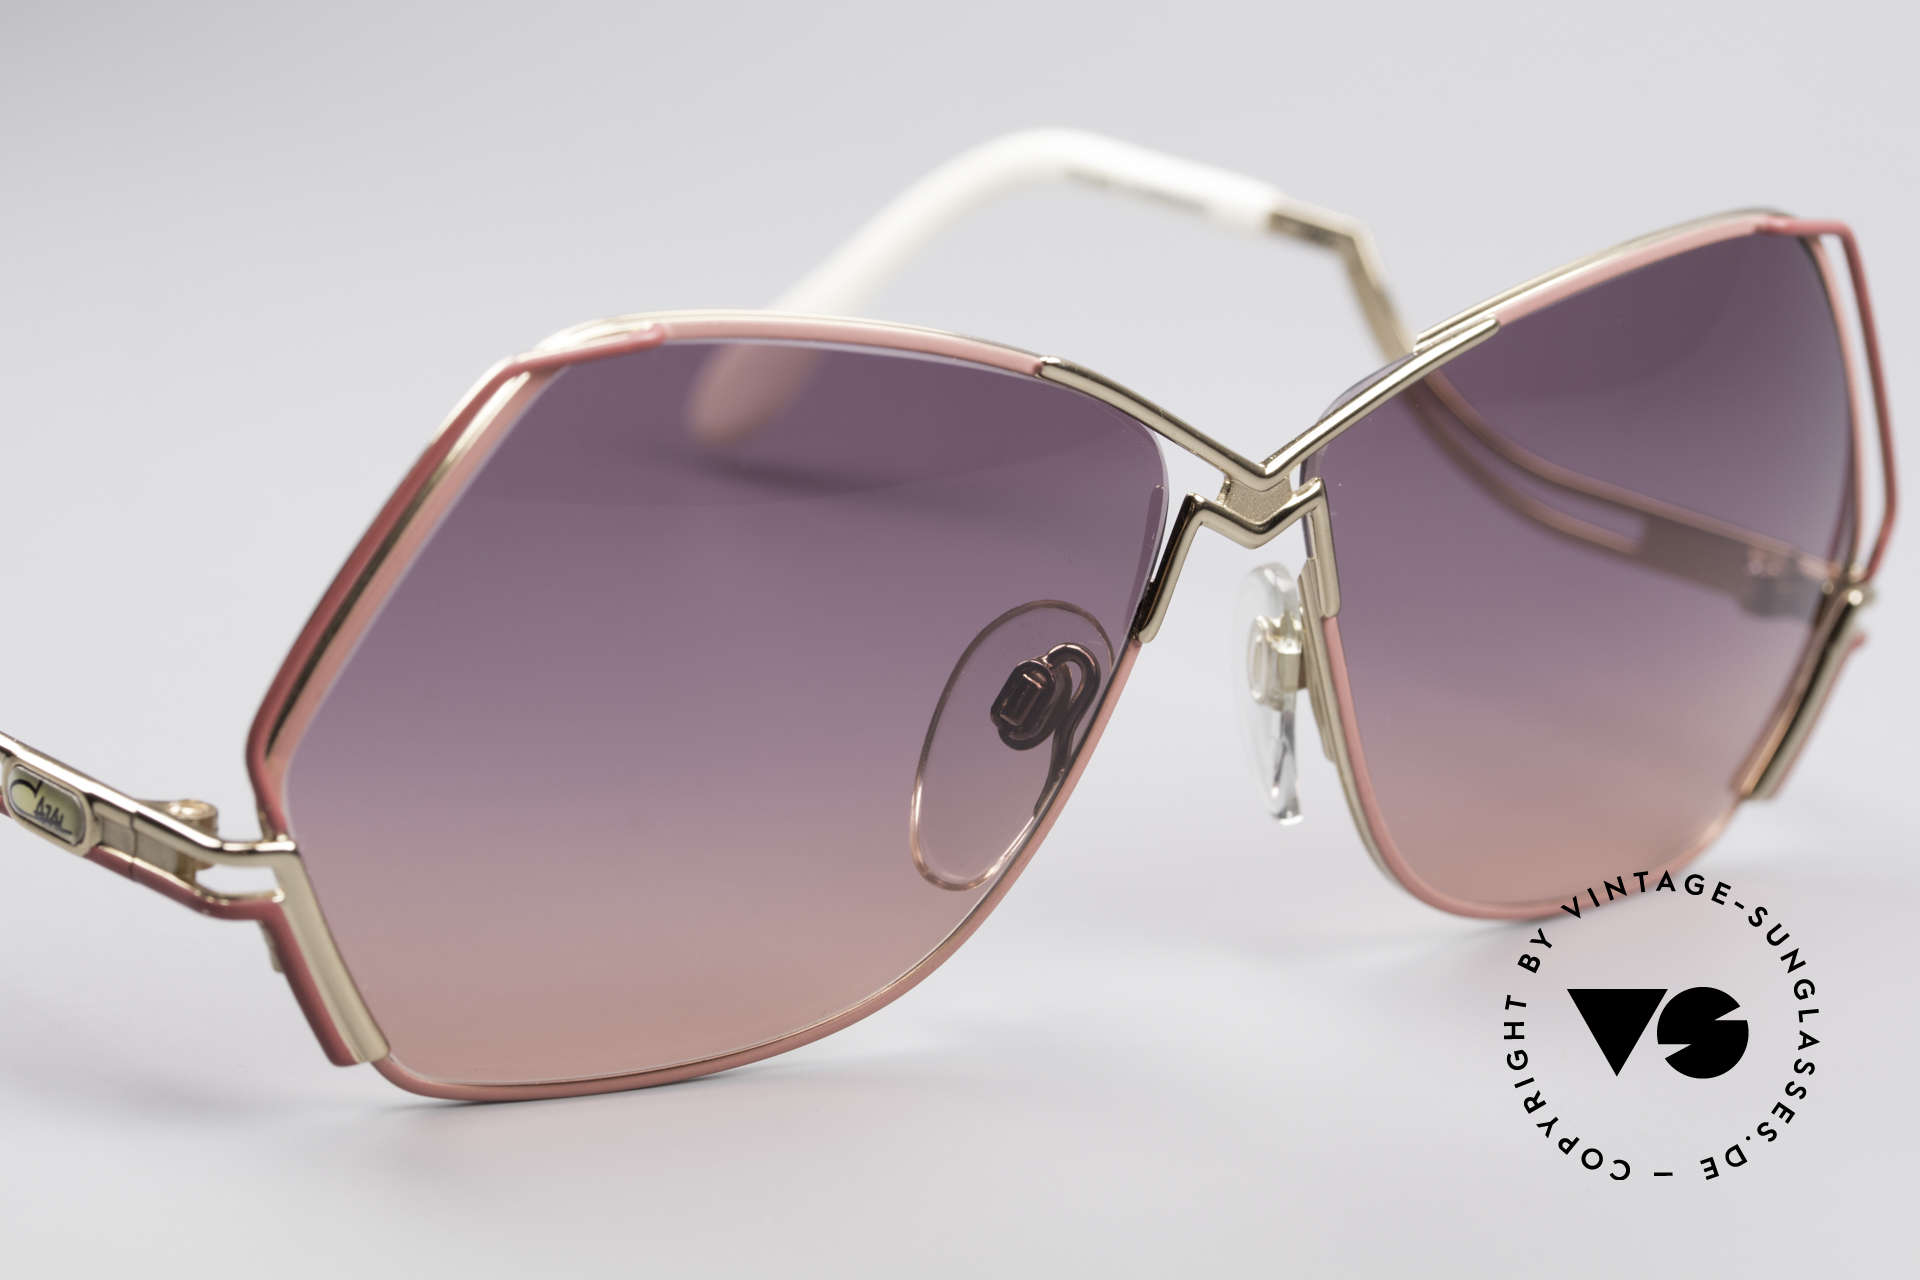 Cazal 226 Vintage Ladies Sunglasses, new old stock, NOS (like all our rare old Cazal eyewear), Made for Women